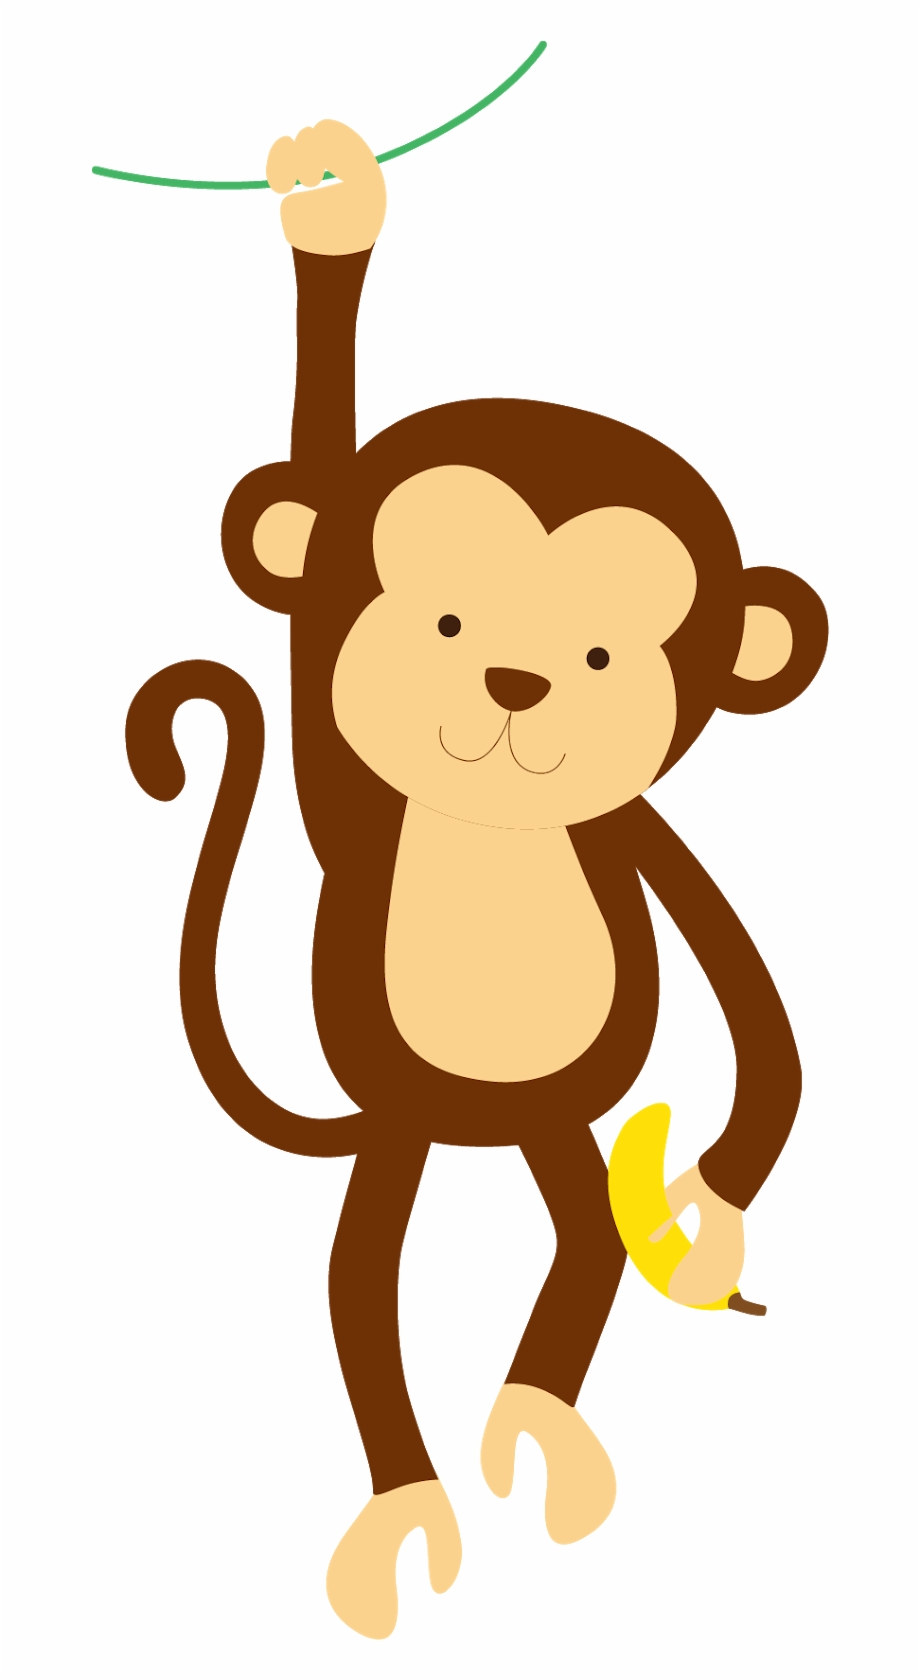 Monkeys clipart chimpanzee. Cartoon clip art monkey